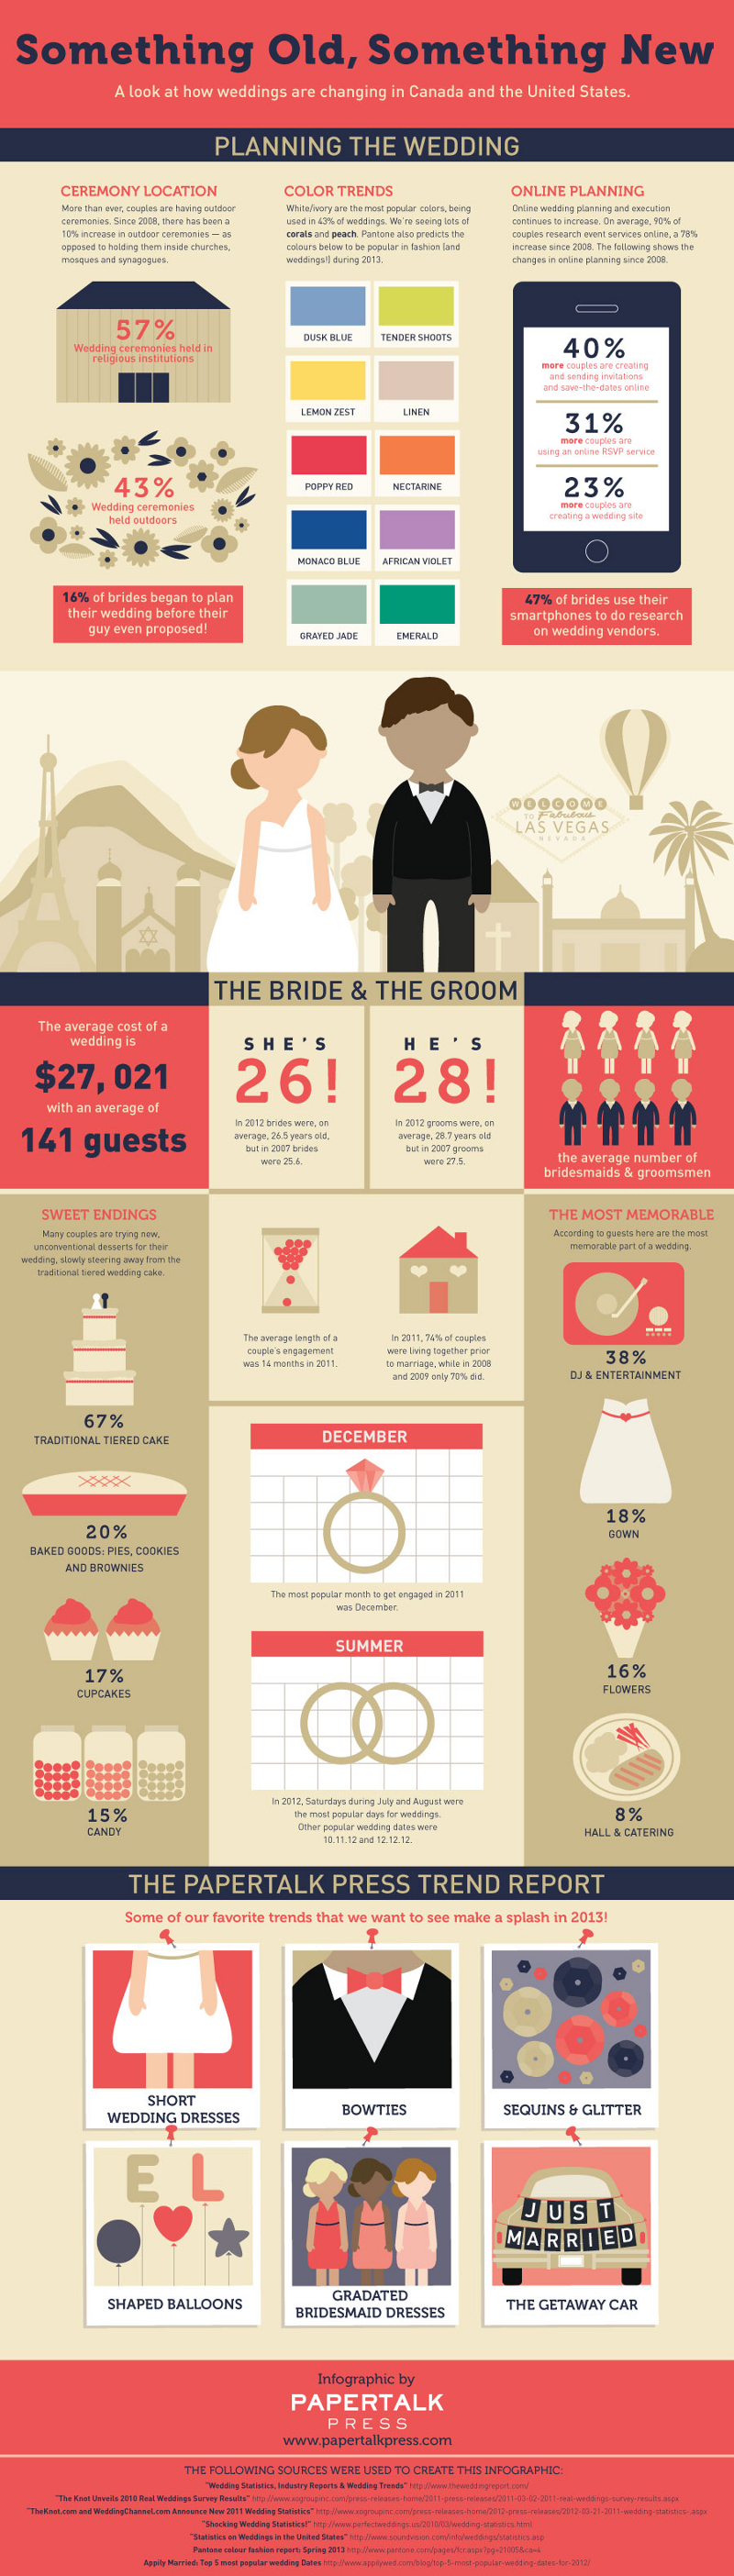 Wedding Trends and Industry Growth